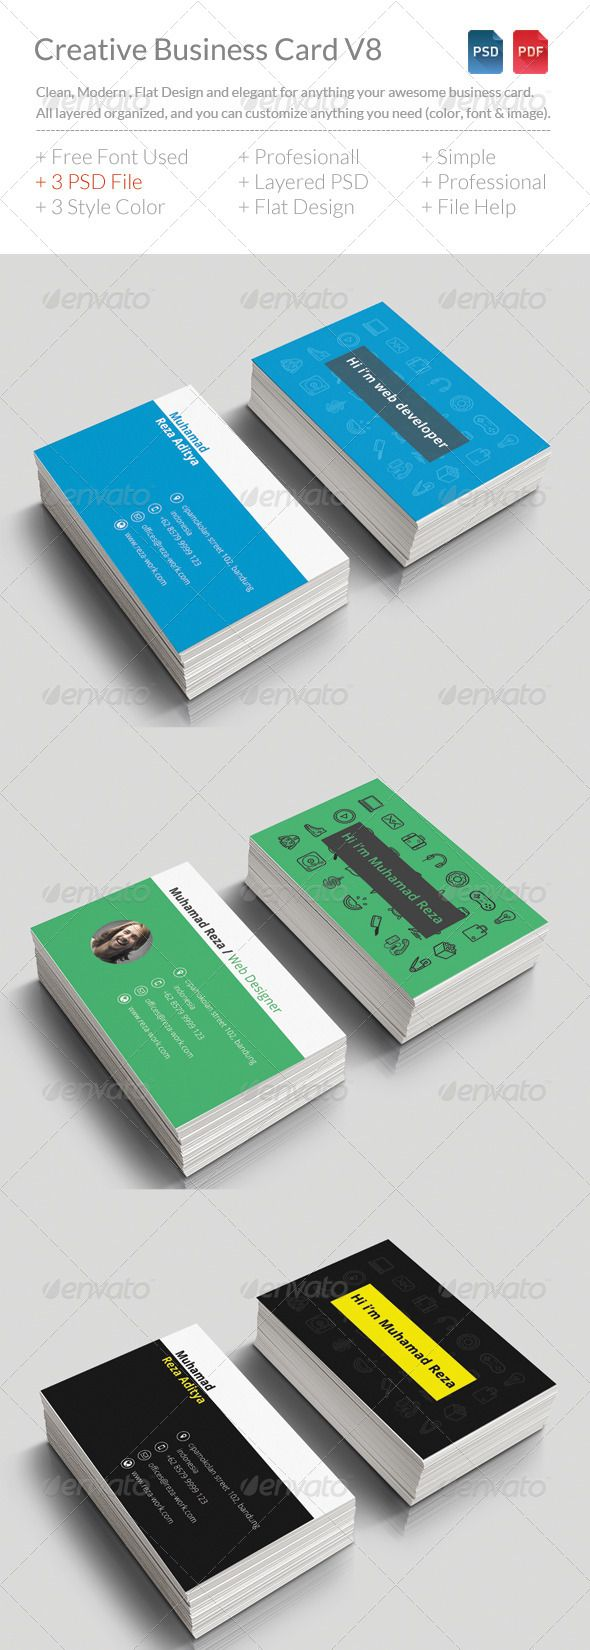 Creative Business Card V8 download in here http://graphicriver.net/item/creative-business-card-v8-/8366236?WT.ac=category_thumb&WT.z_author=BdgPixel